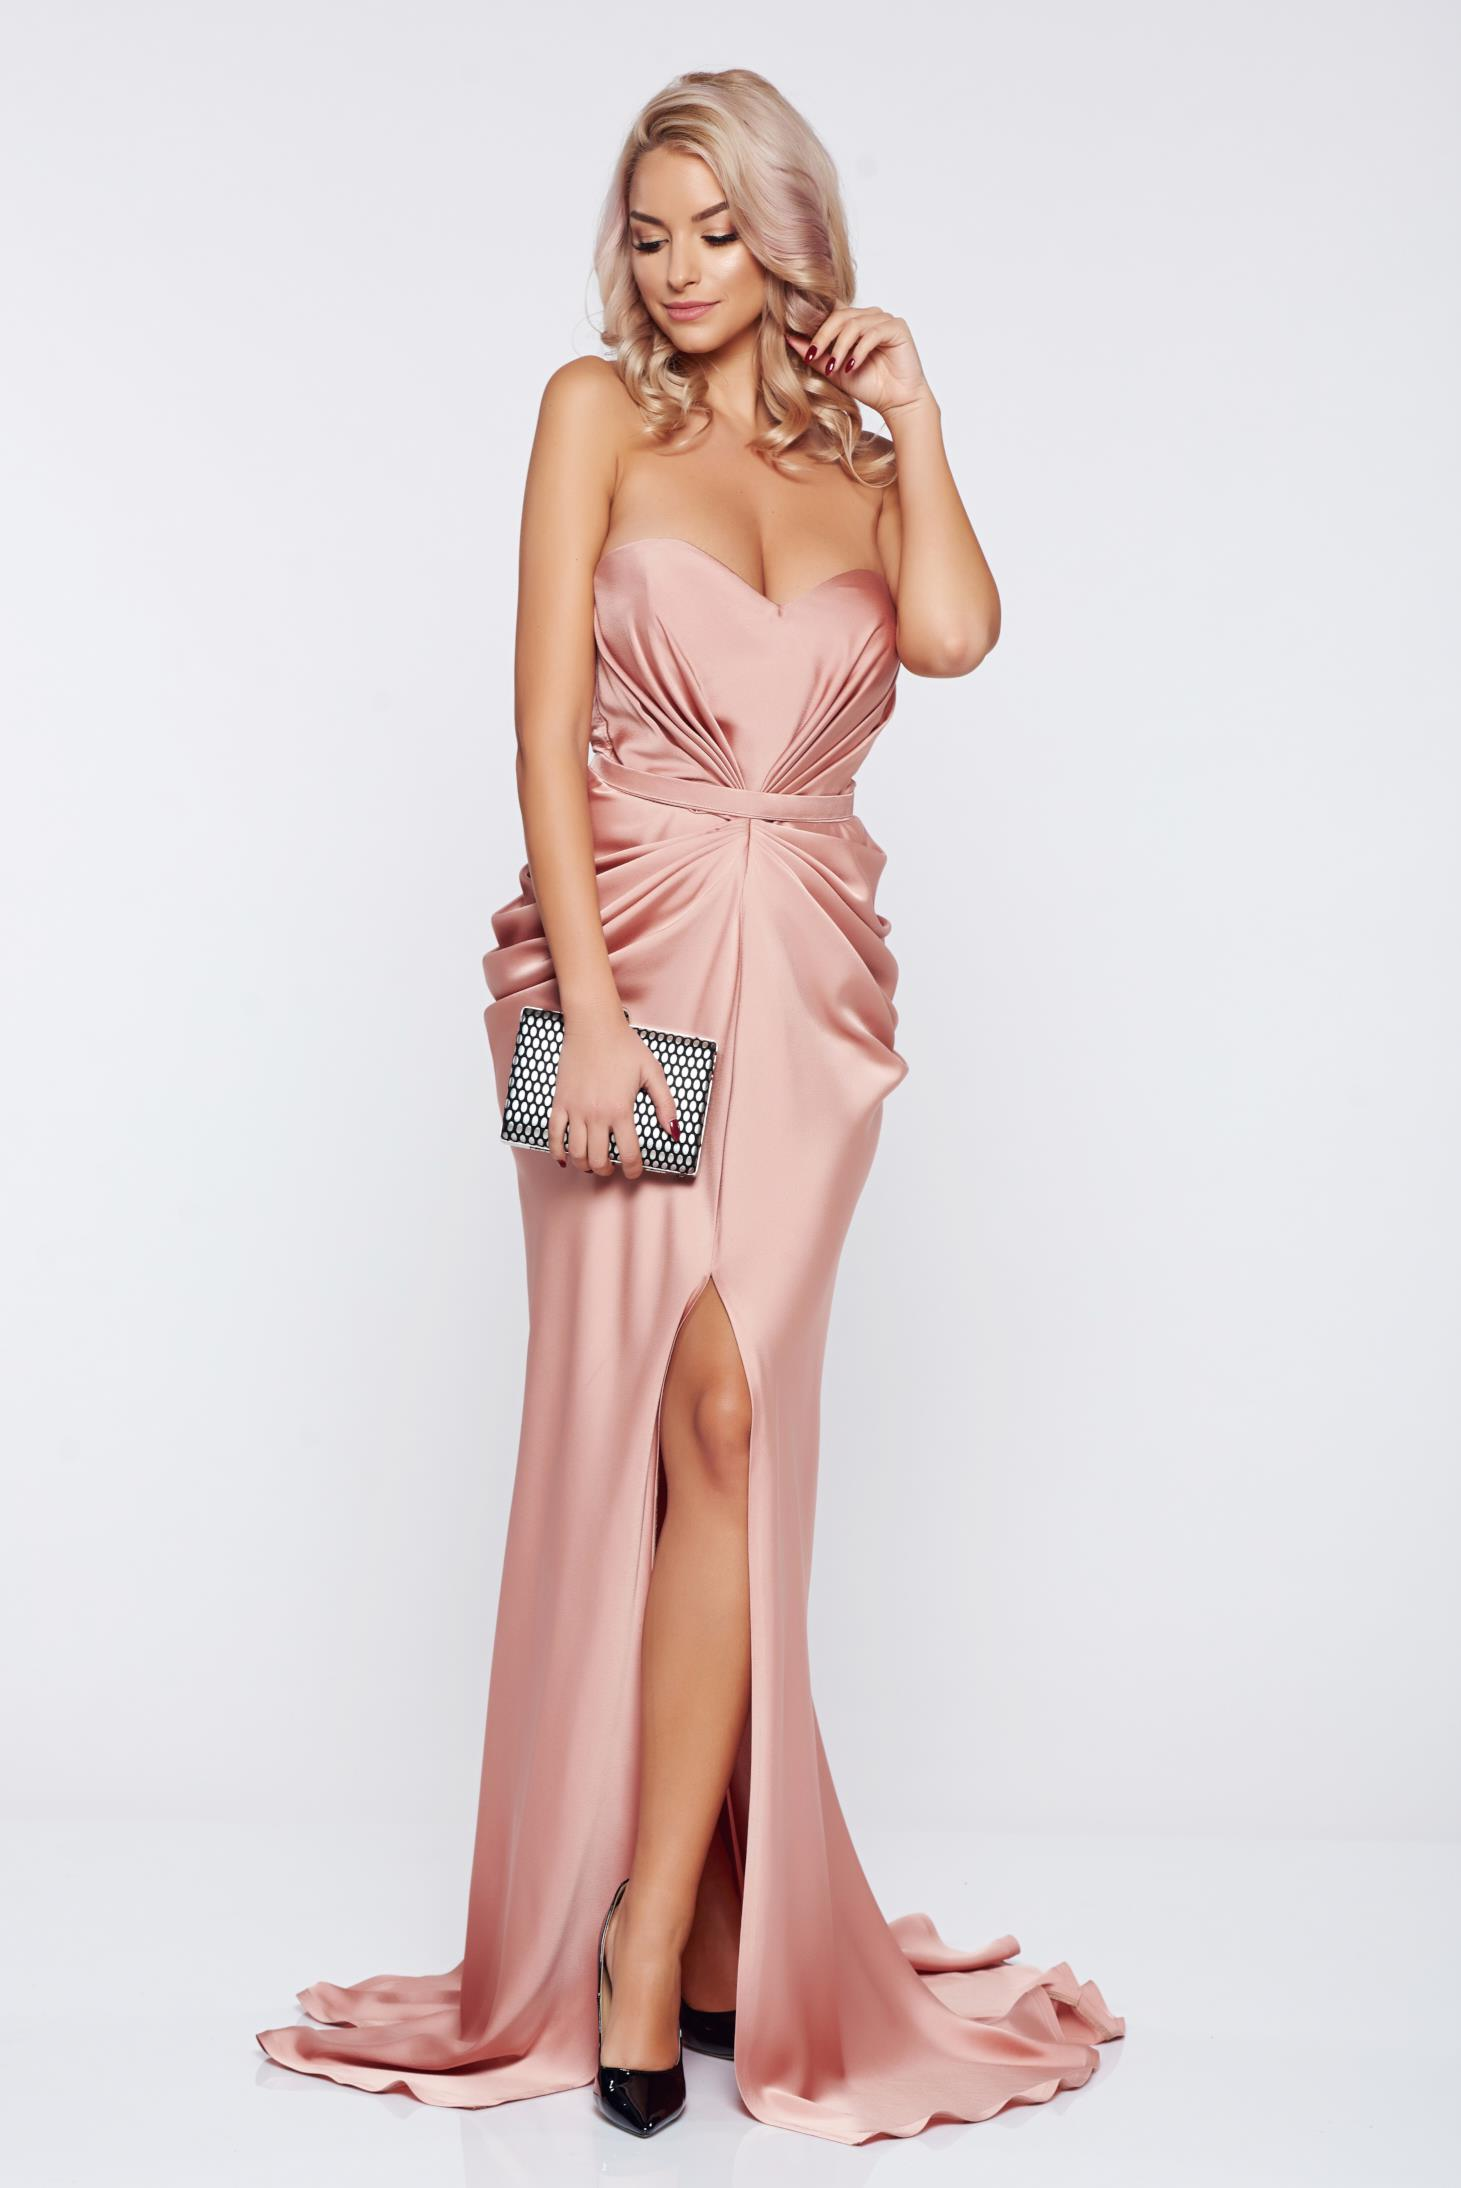 Ana Radu luxurious off shoulder dress from satin fabric texture with push-up bra accessorized with tied waistband peach